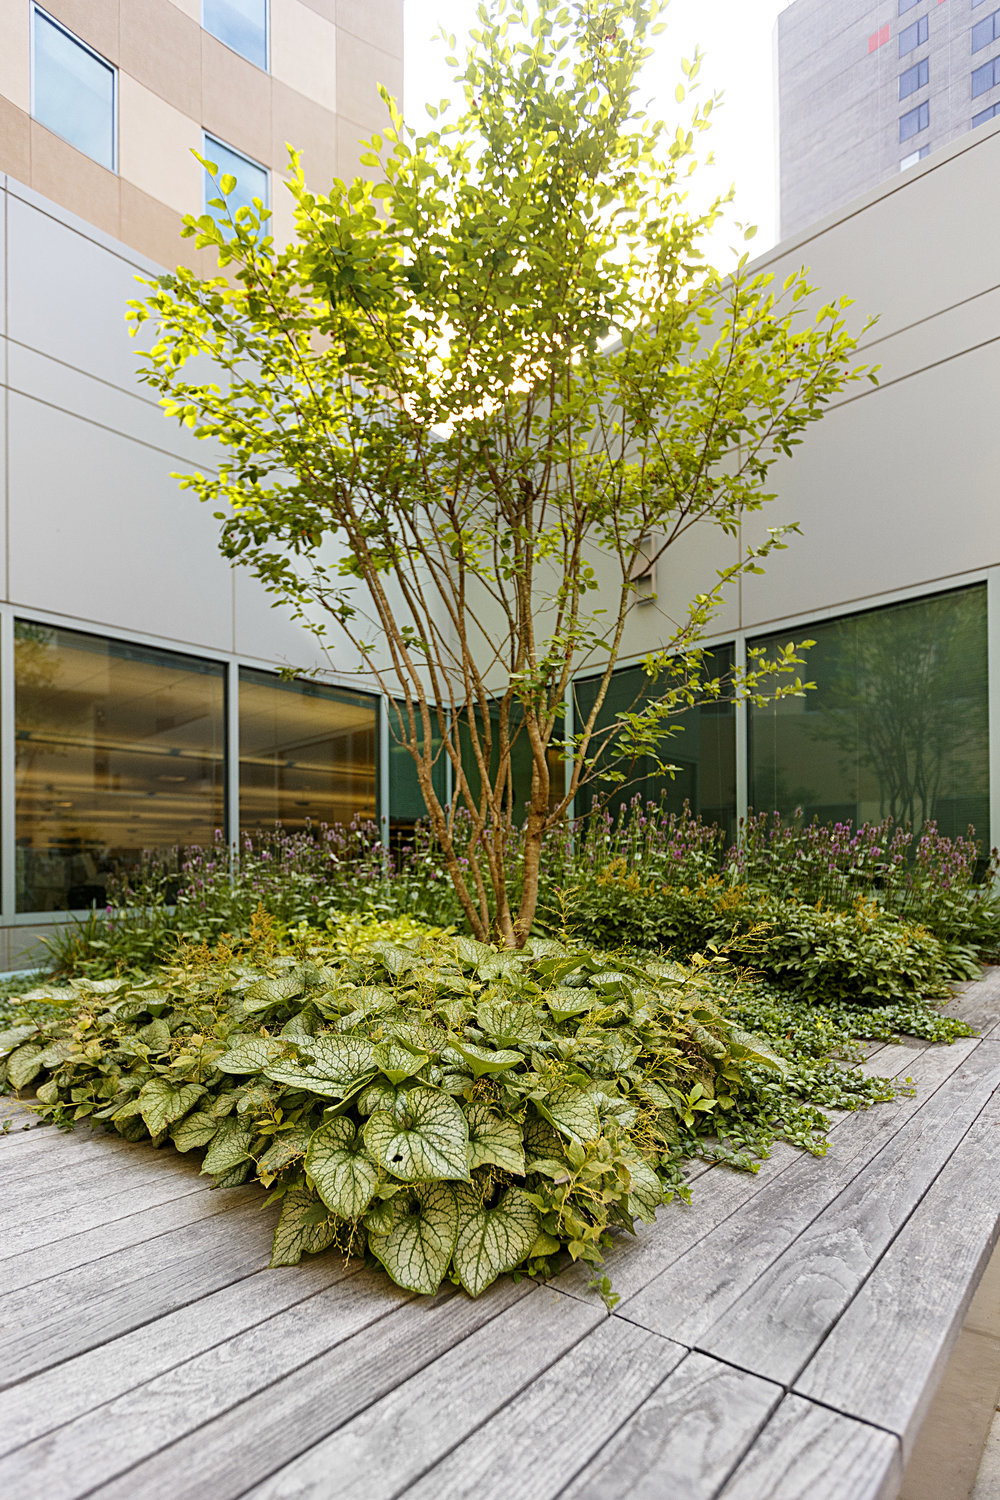 Recover-Green-Roofs-0030.jpg